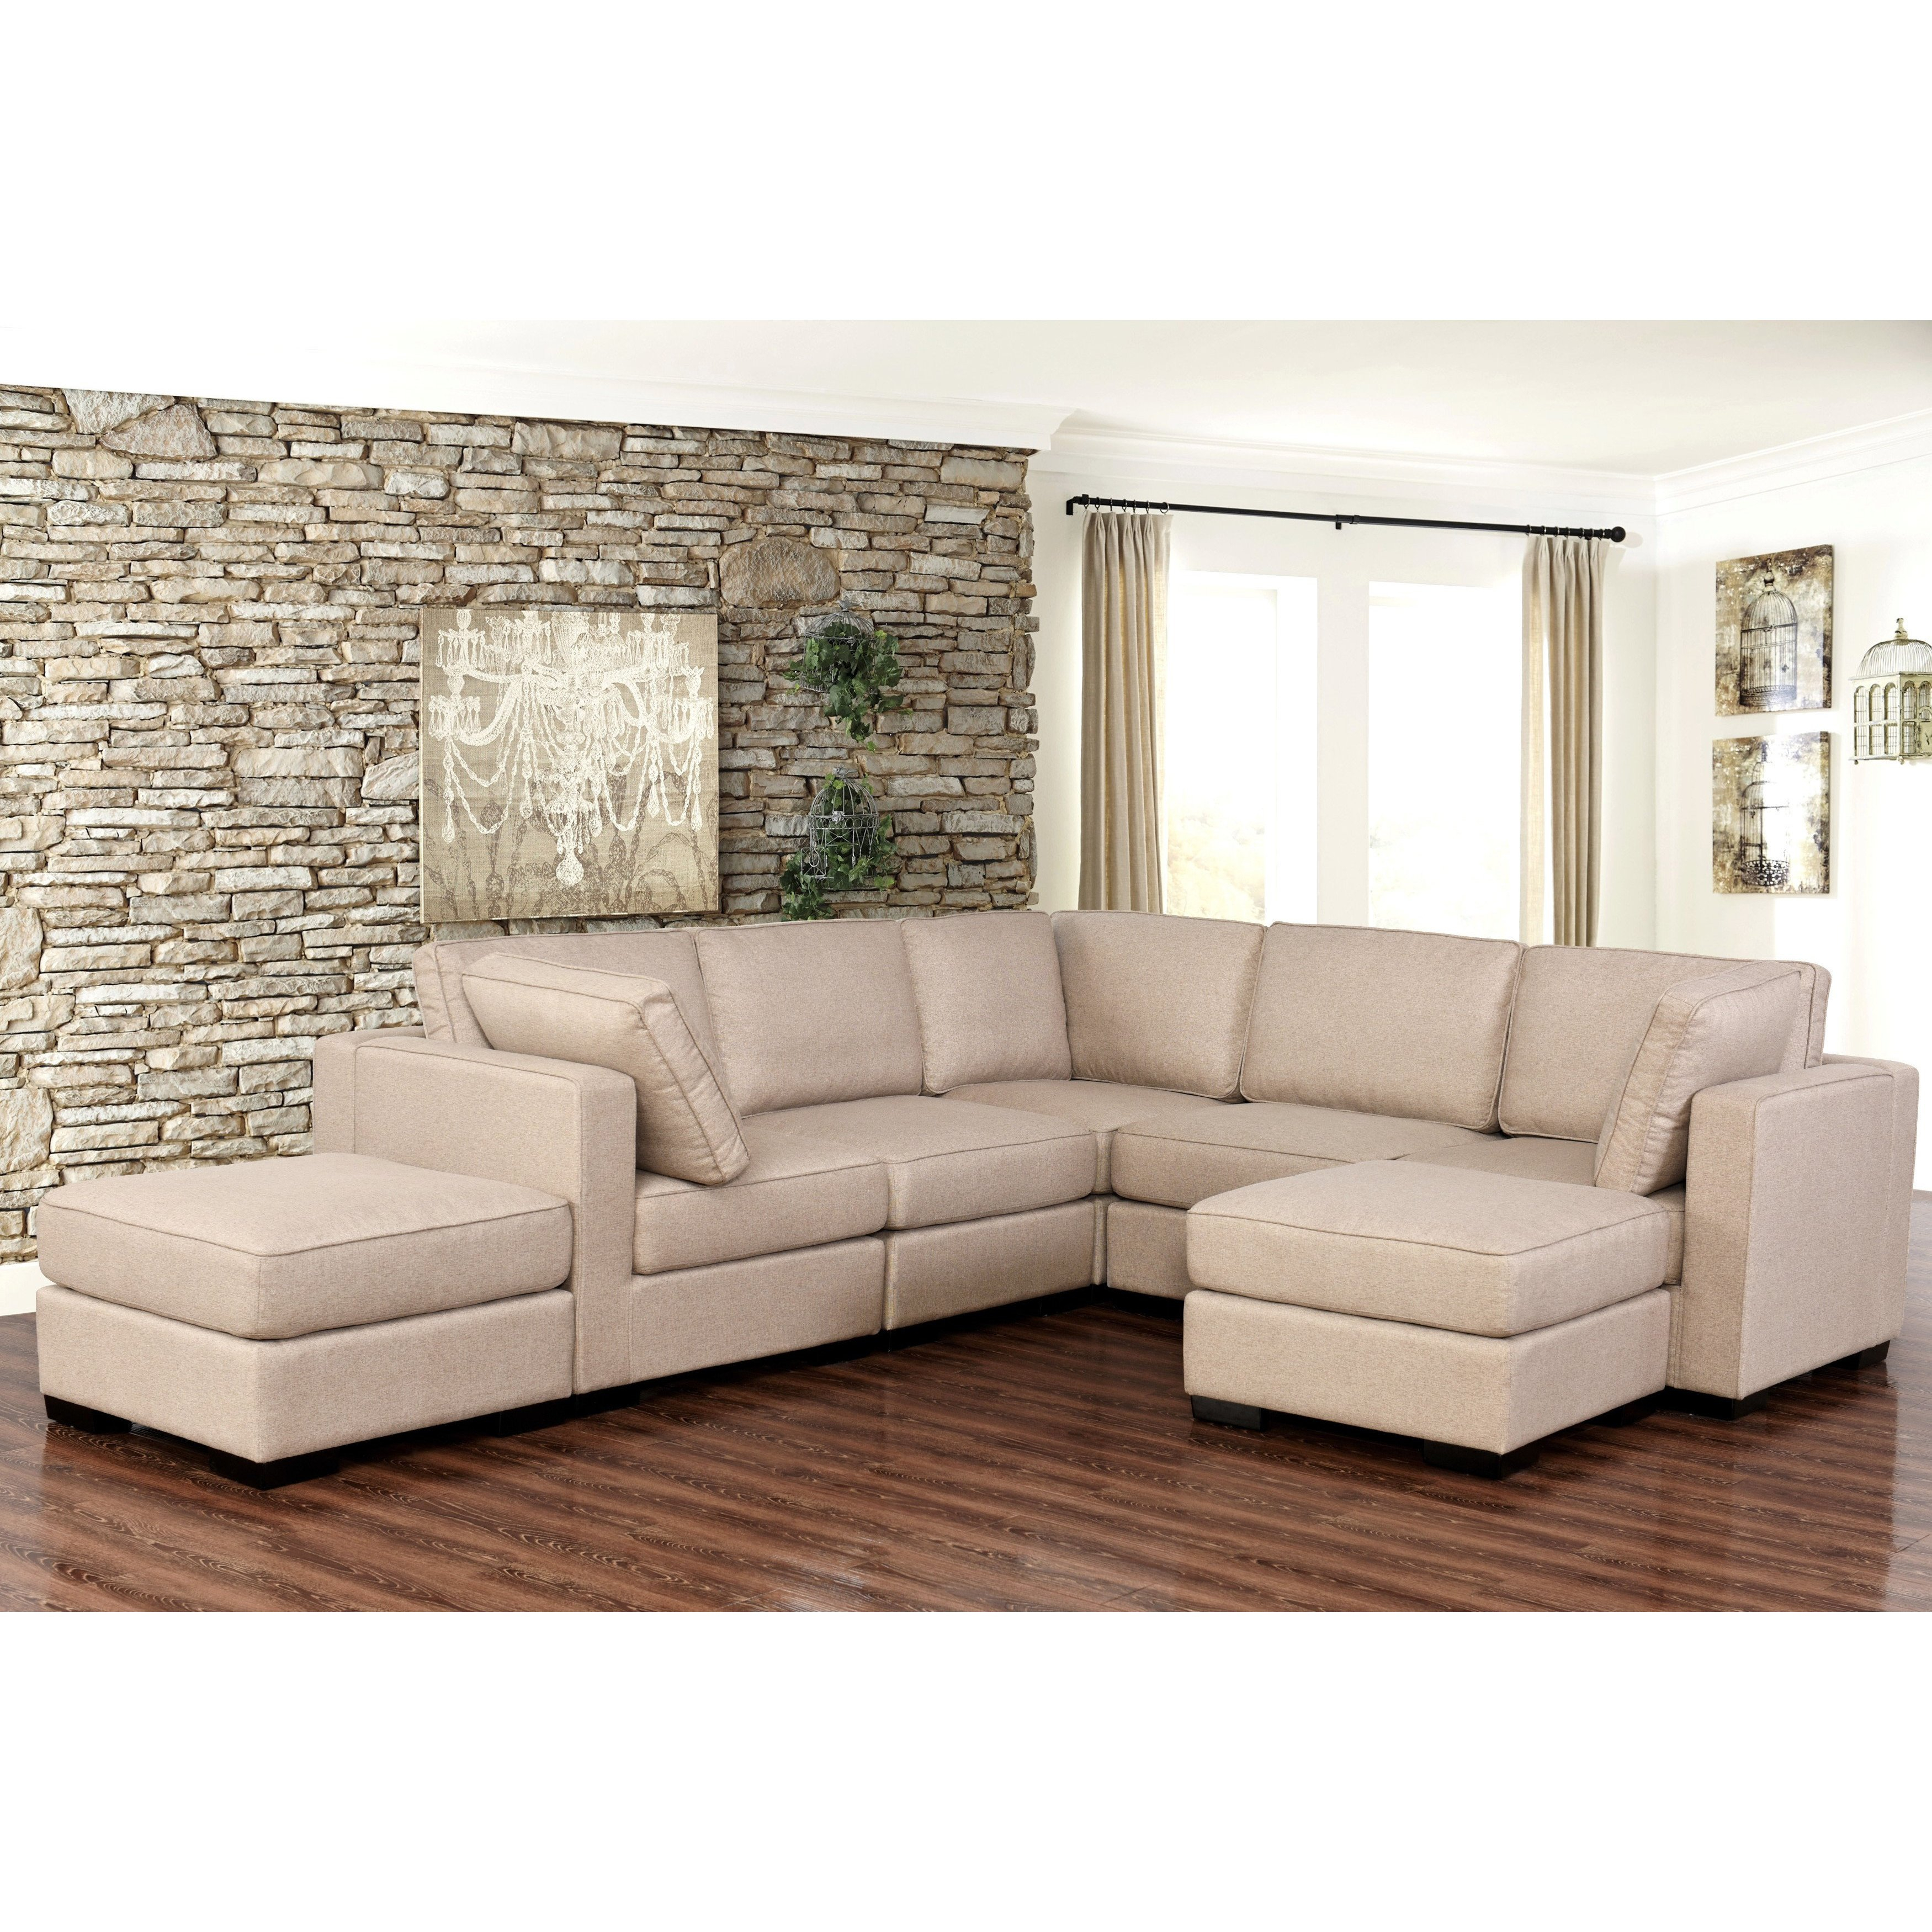 Shop Abbyson Harper Fabric Modular 7 Piece Sectional – Free Shipping For Harper Down Oversized Sofa Chairs (View 6 of 25)